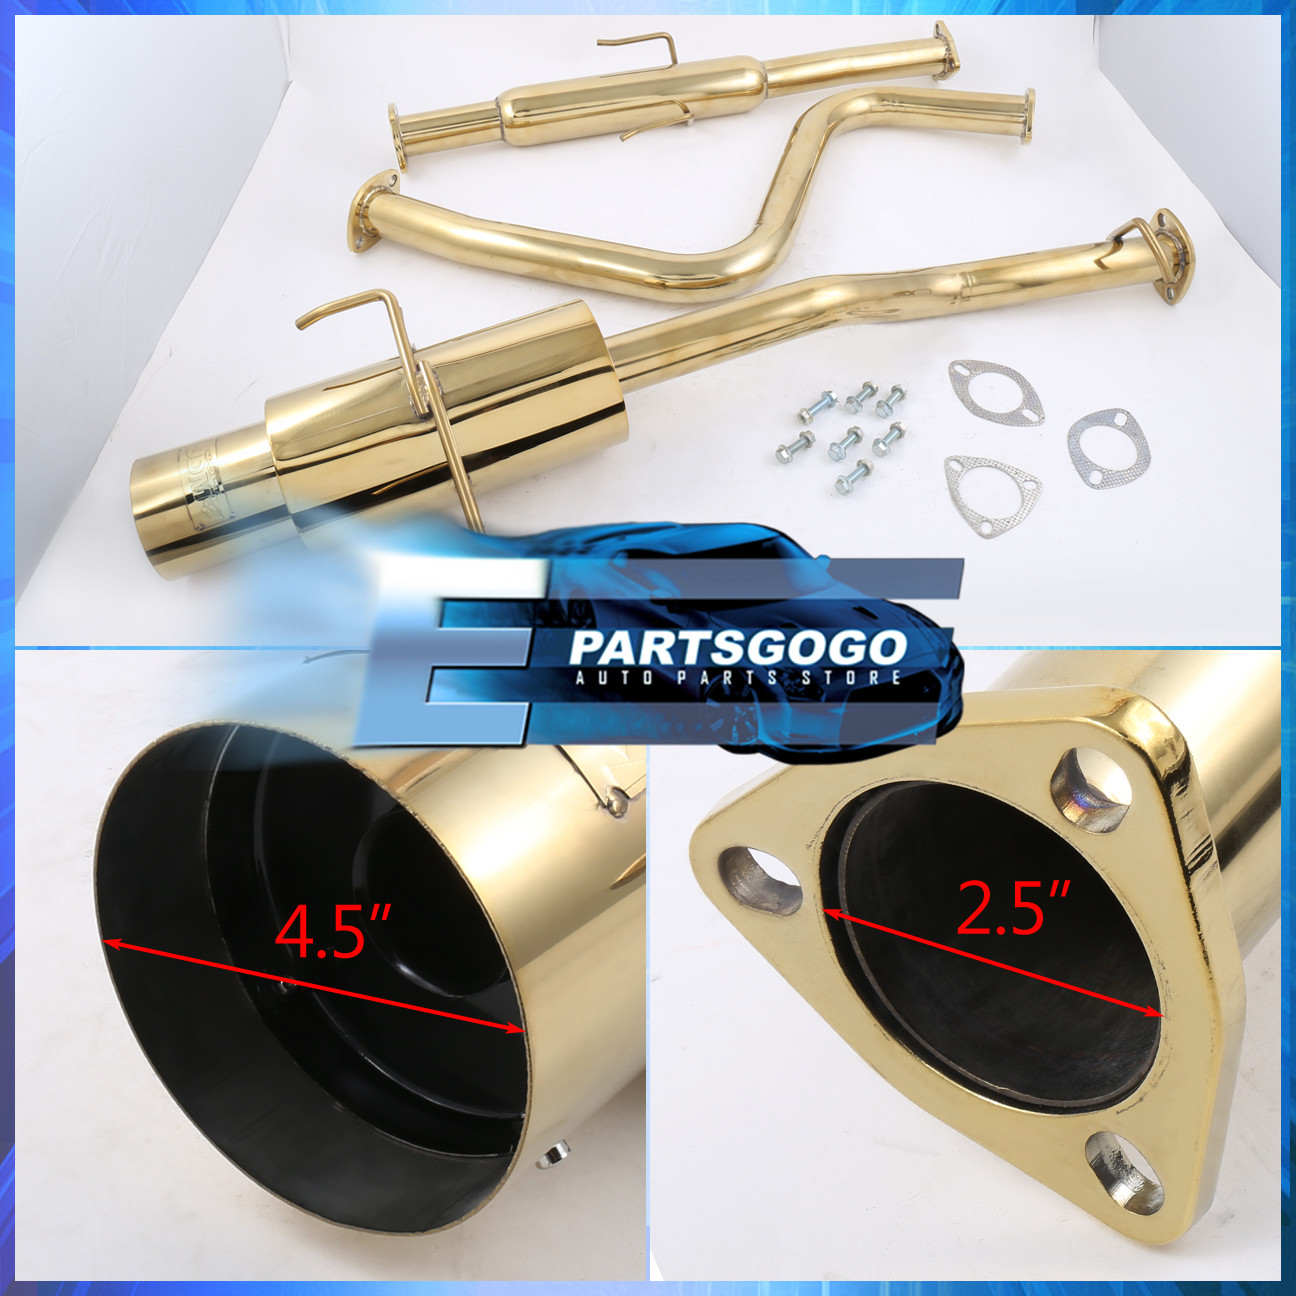 hight resolution of 4 5 muffler tip gold catback exhaust 2 5 piping for 2001 2005 honda civic ex